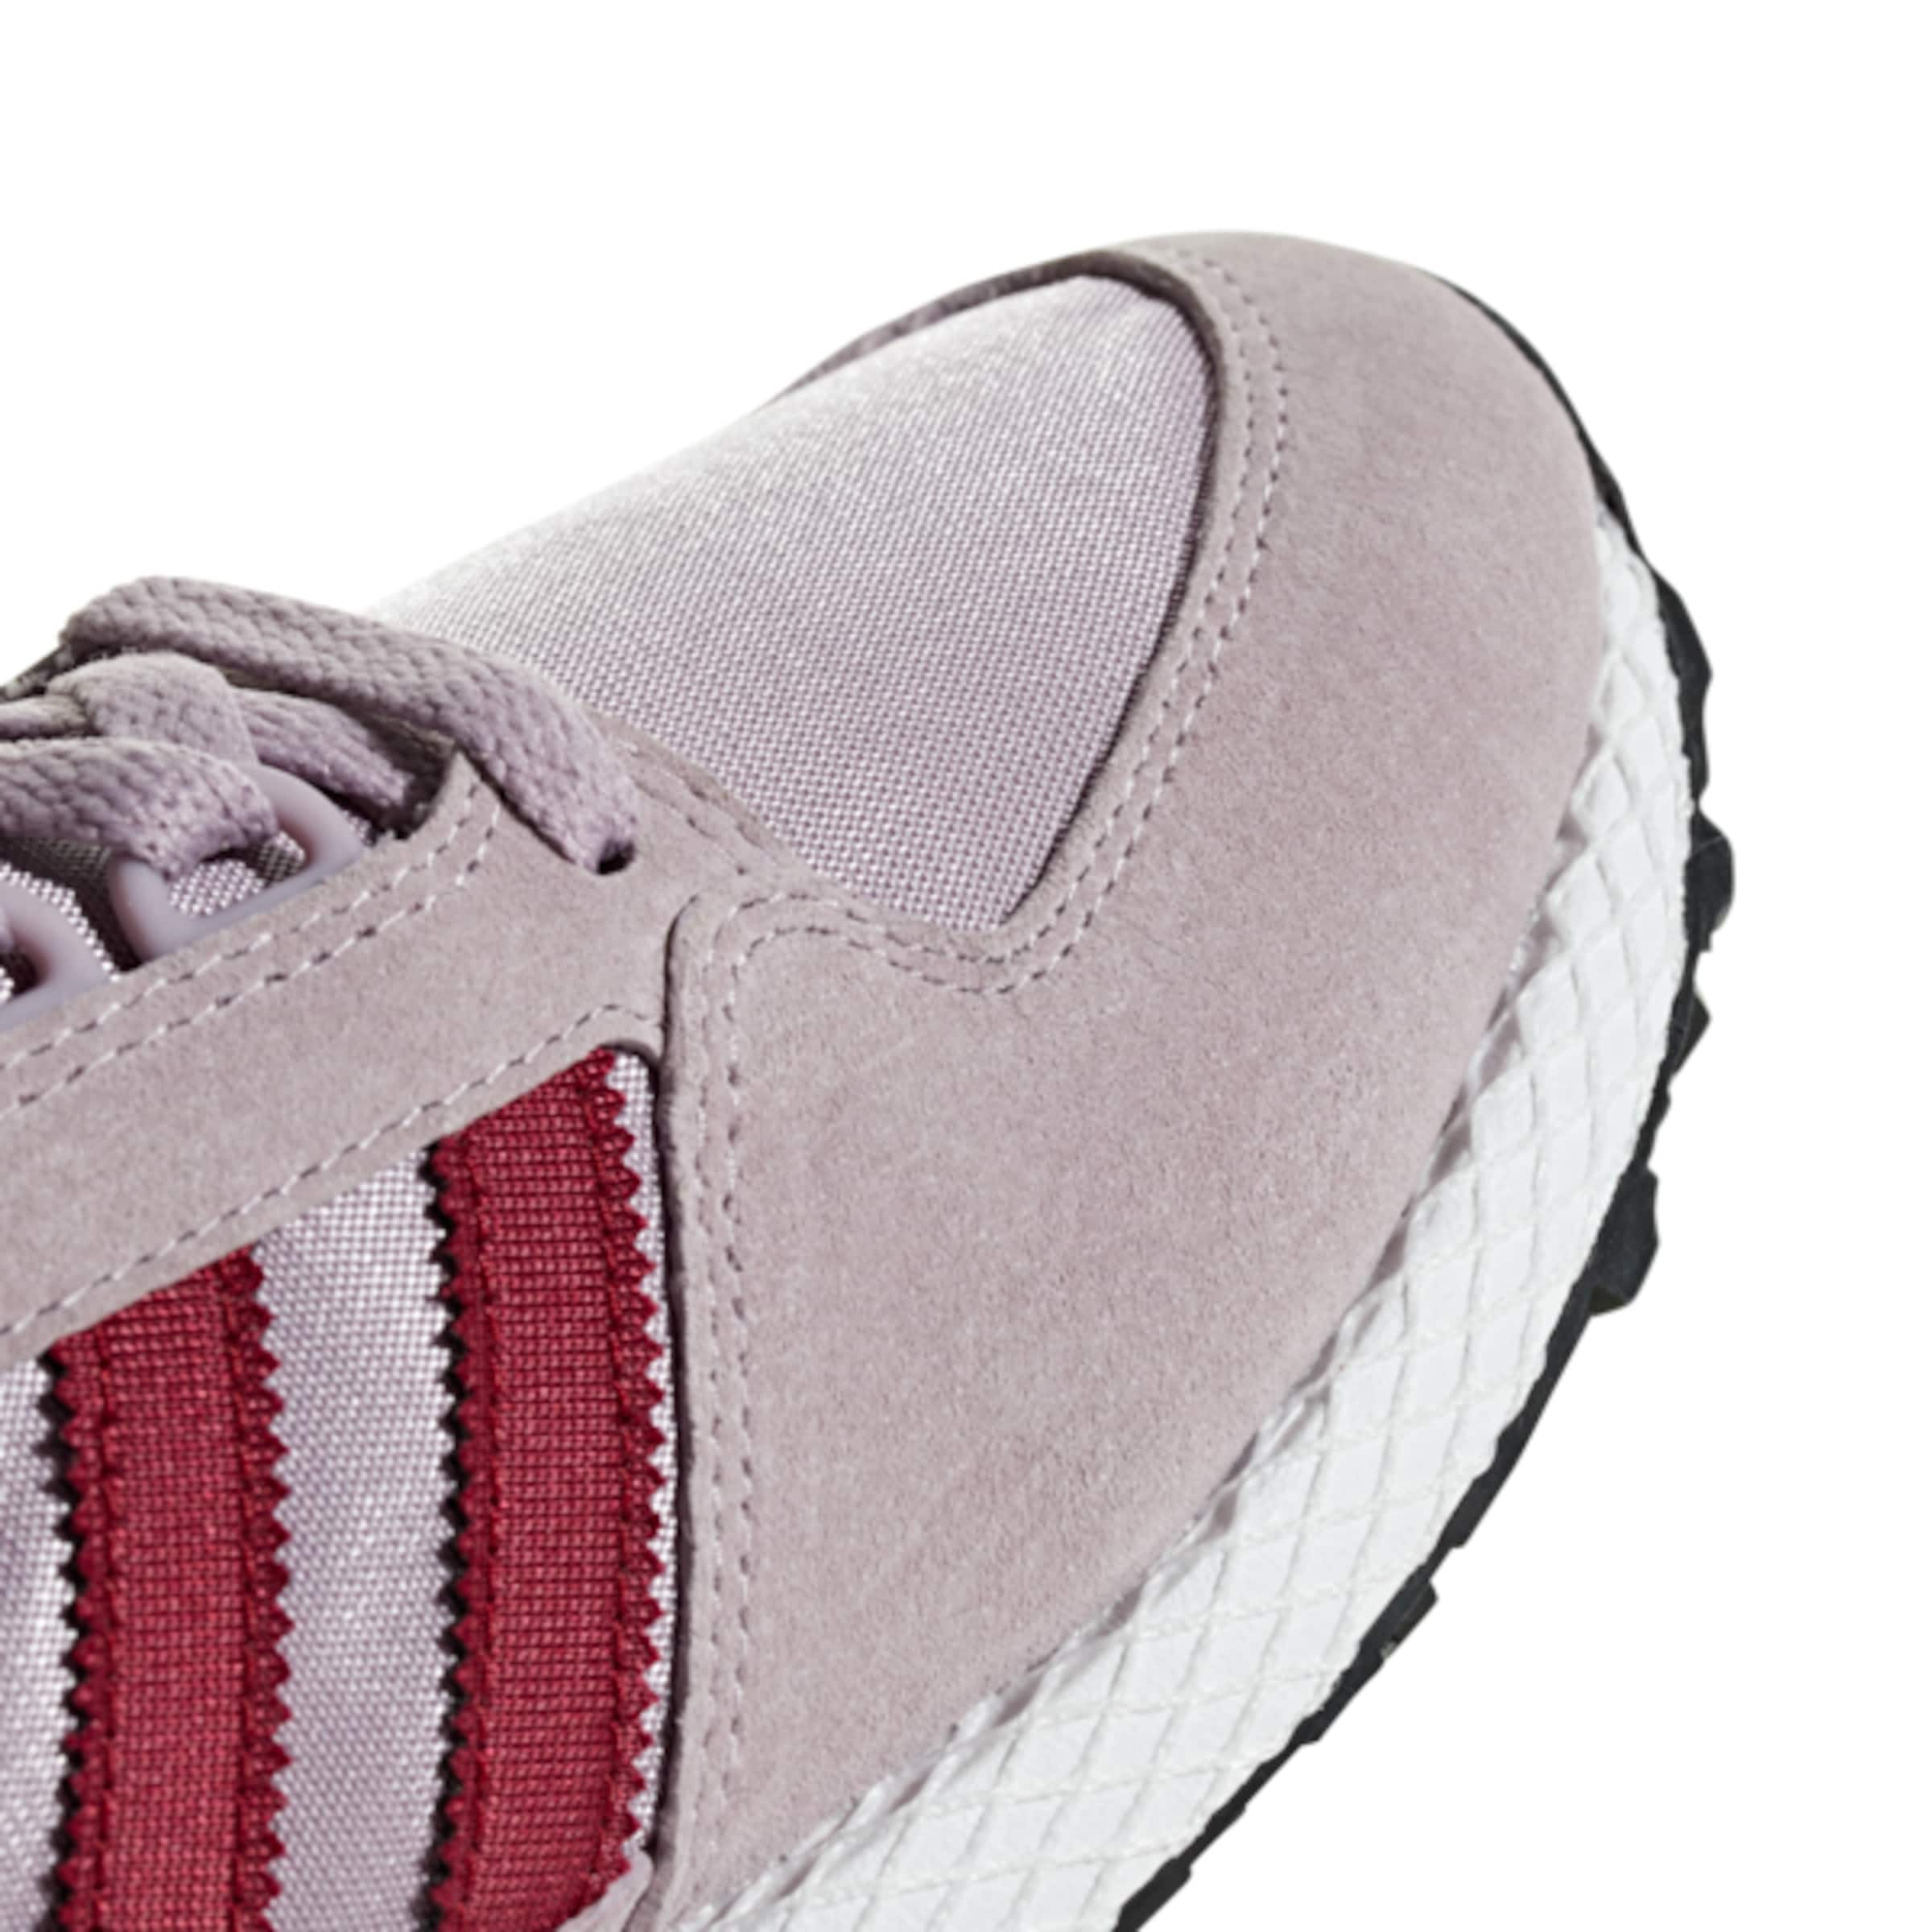 LilasMerlot Adidas 'forest Basses Grove' Originals En Baskets GUqpSzMV